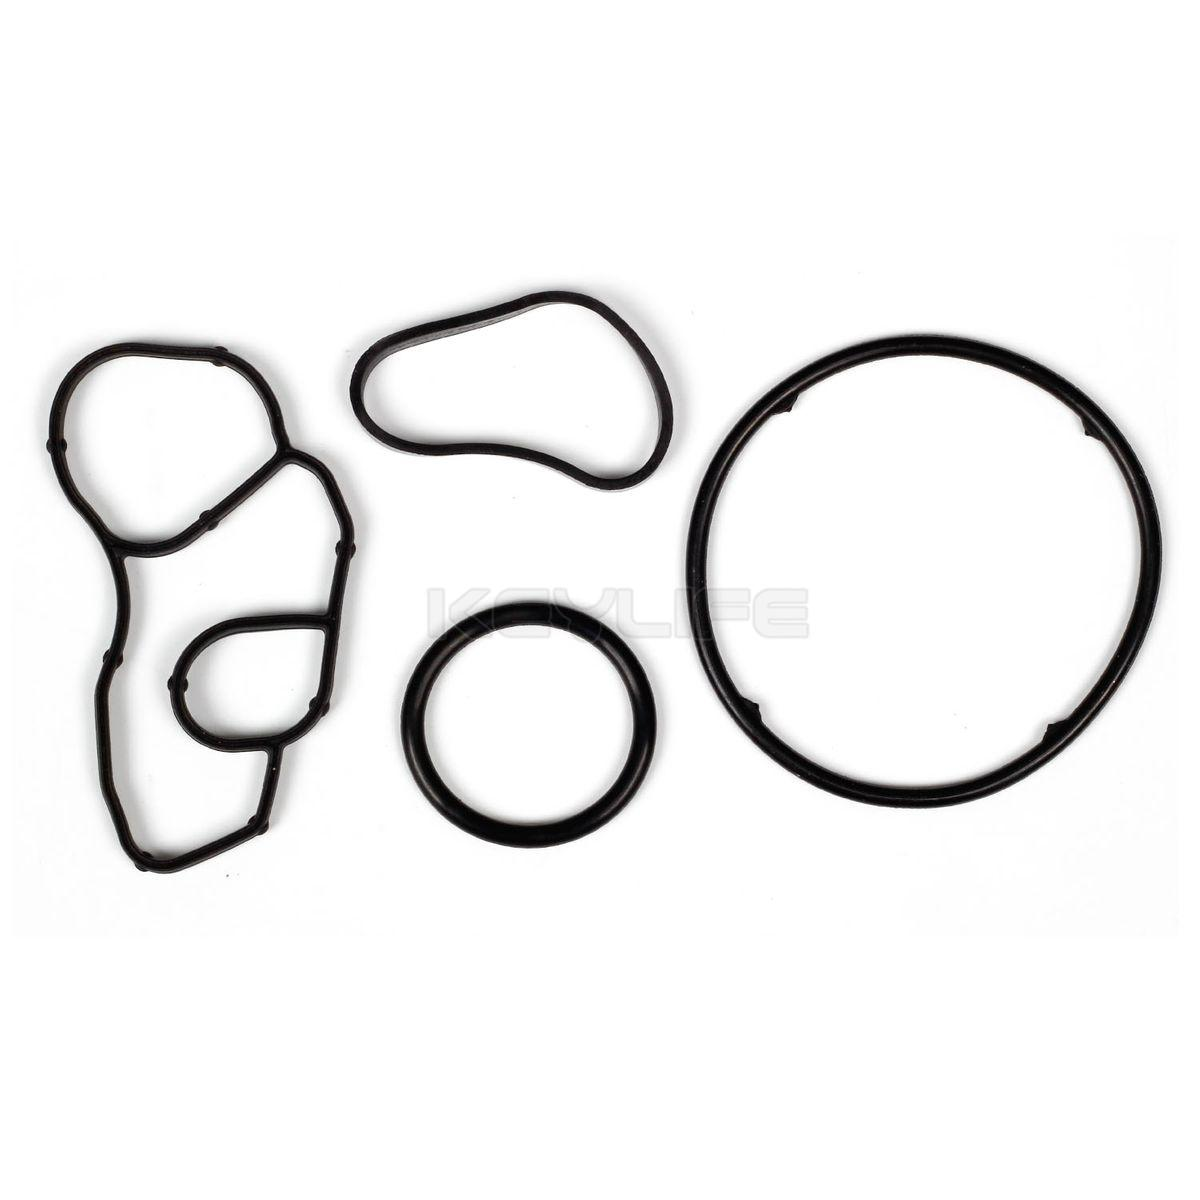 Engine Head Gasket Sets For Mini Cooper R55 R56 Turbo 09